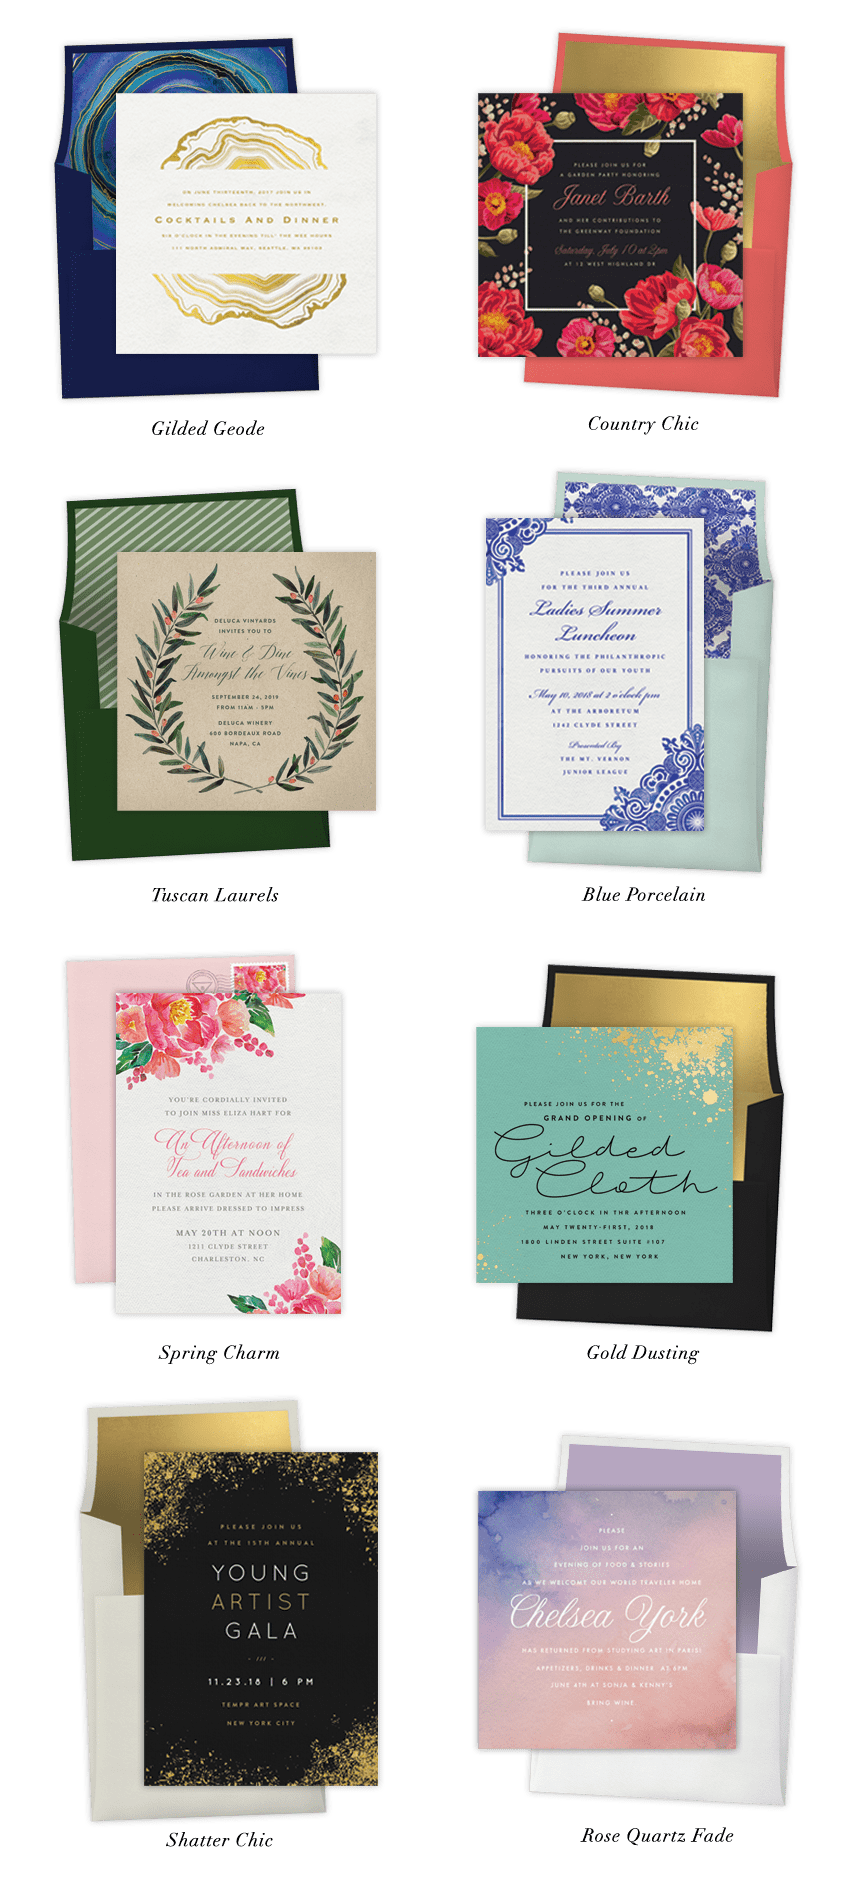 New Colin Cowie Entertaining Invitation collection